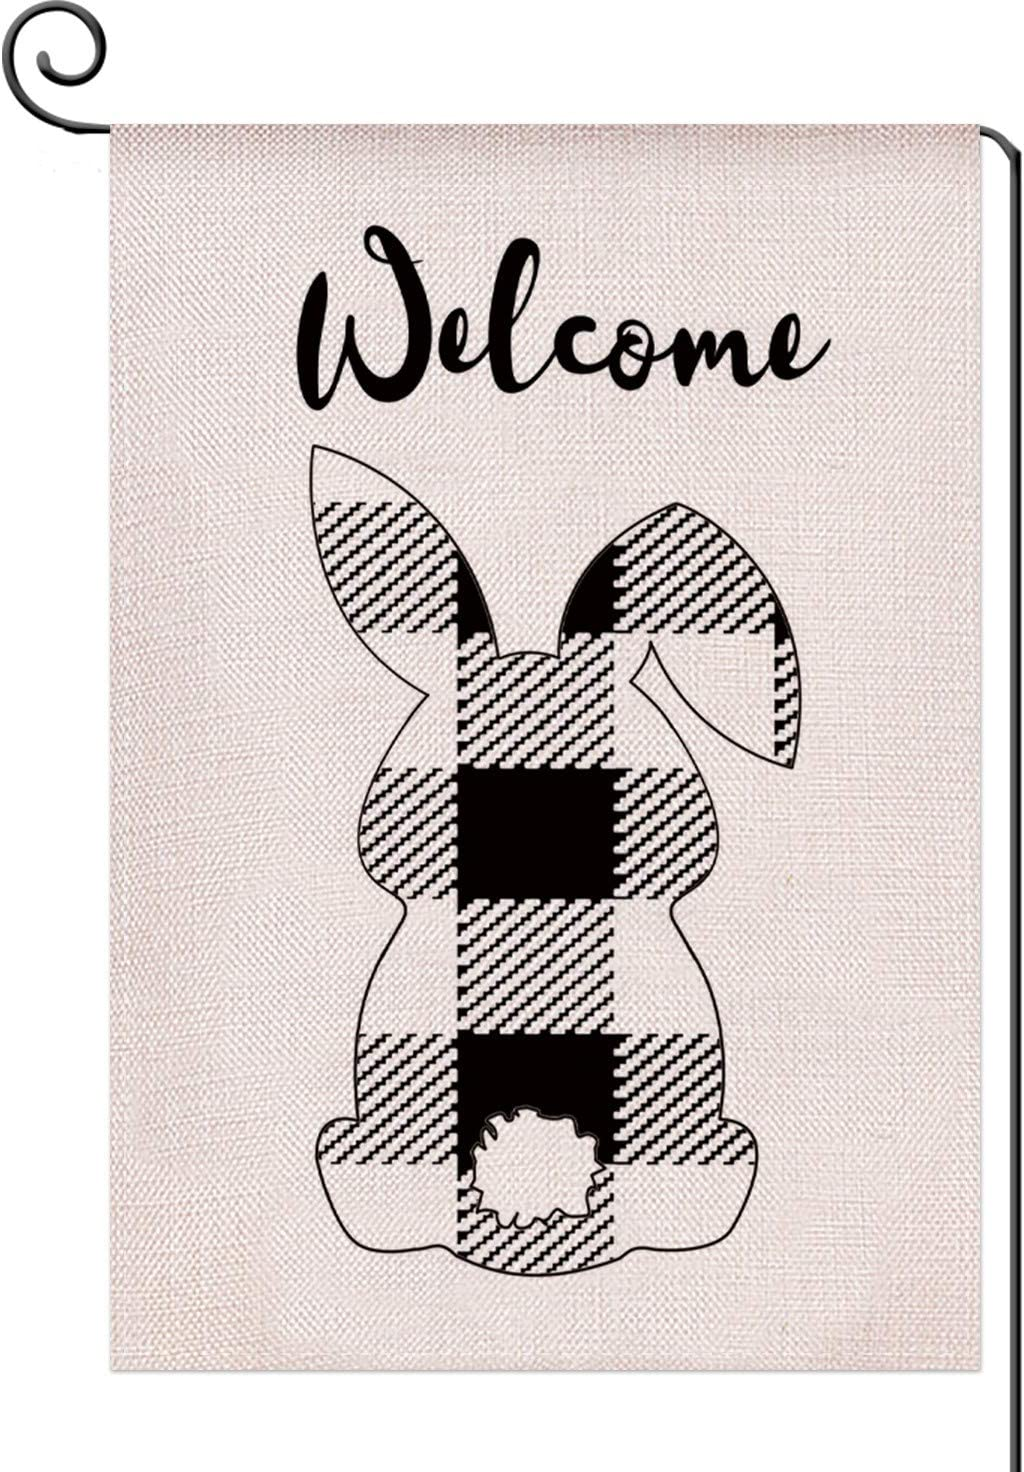 Welcome Easter Cute Bunny Spring Small Garden Flag Vertical Double Sided 12.5x18 inch,Black and White Buffalo Plaid Check Farmhouse Burlap Yard Outdoor Decor